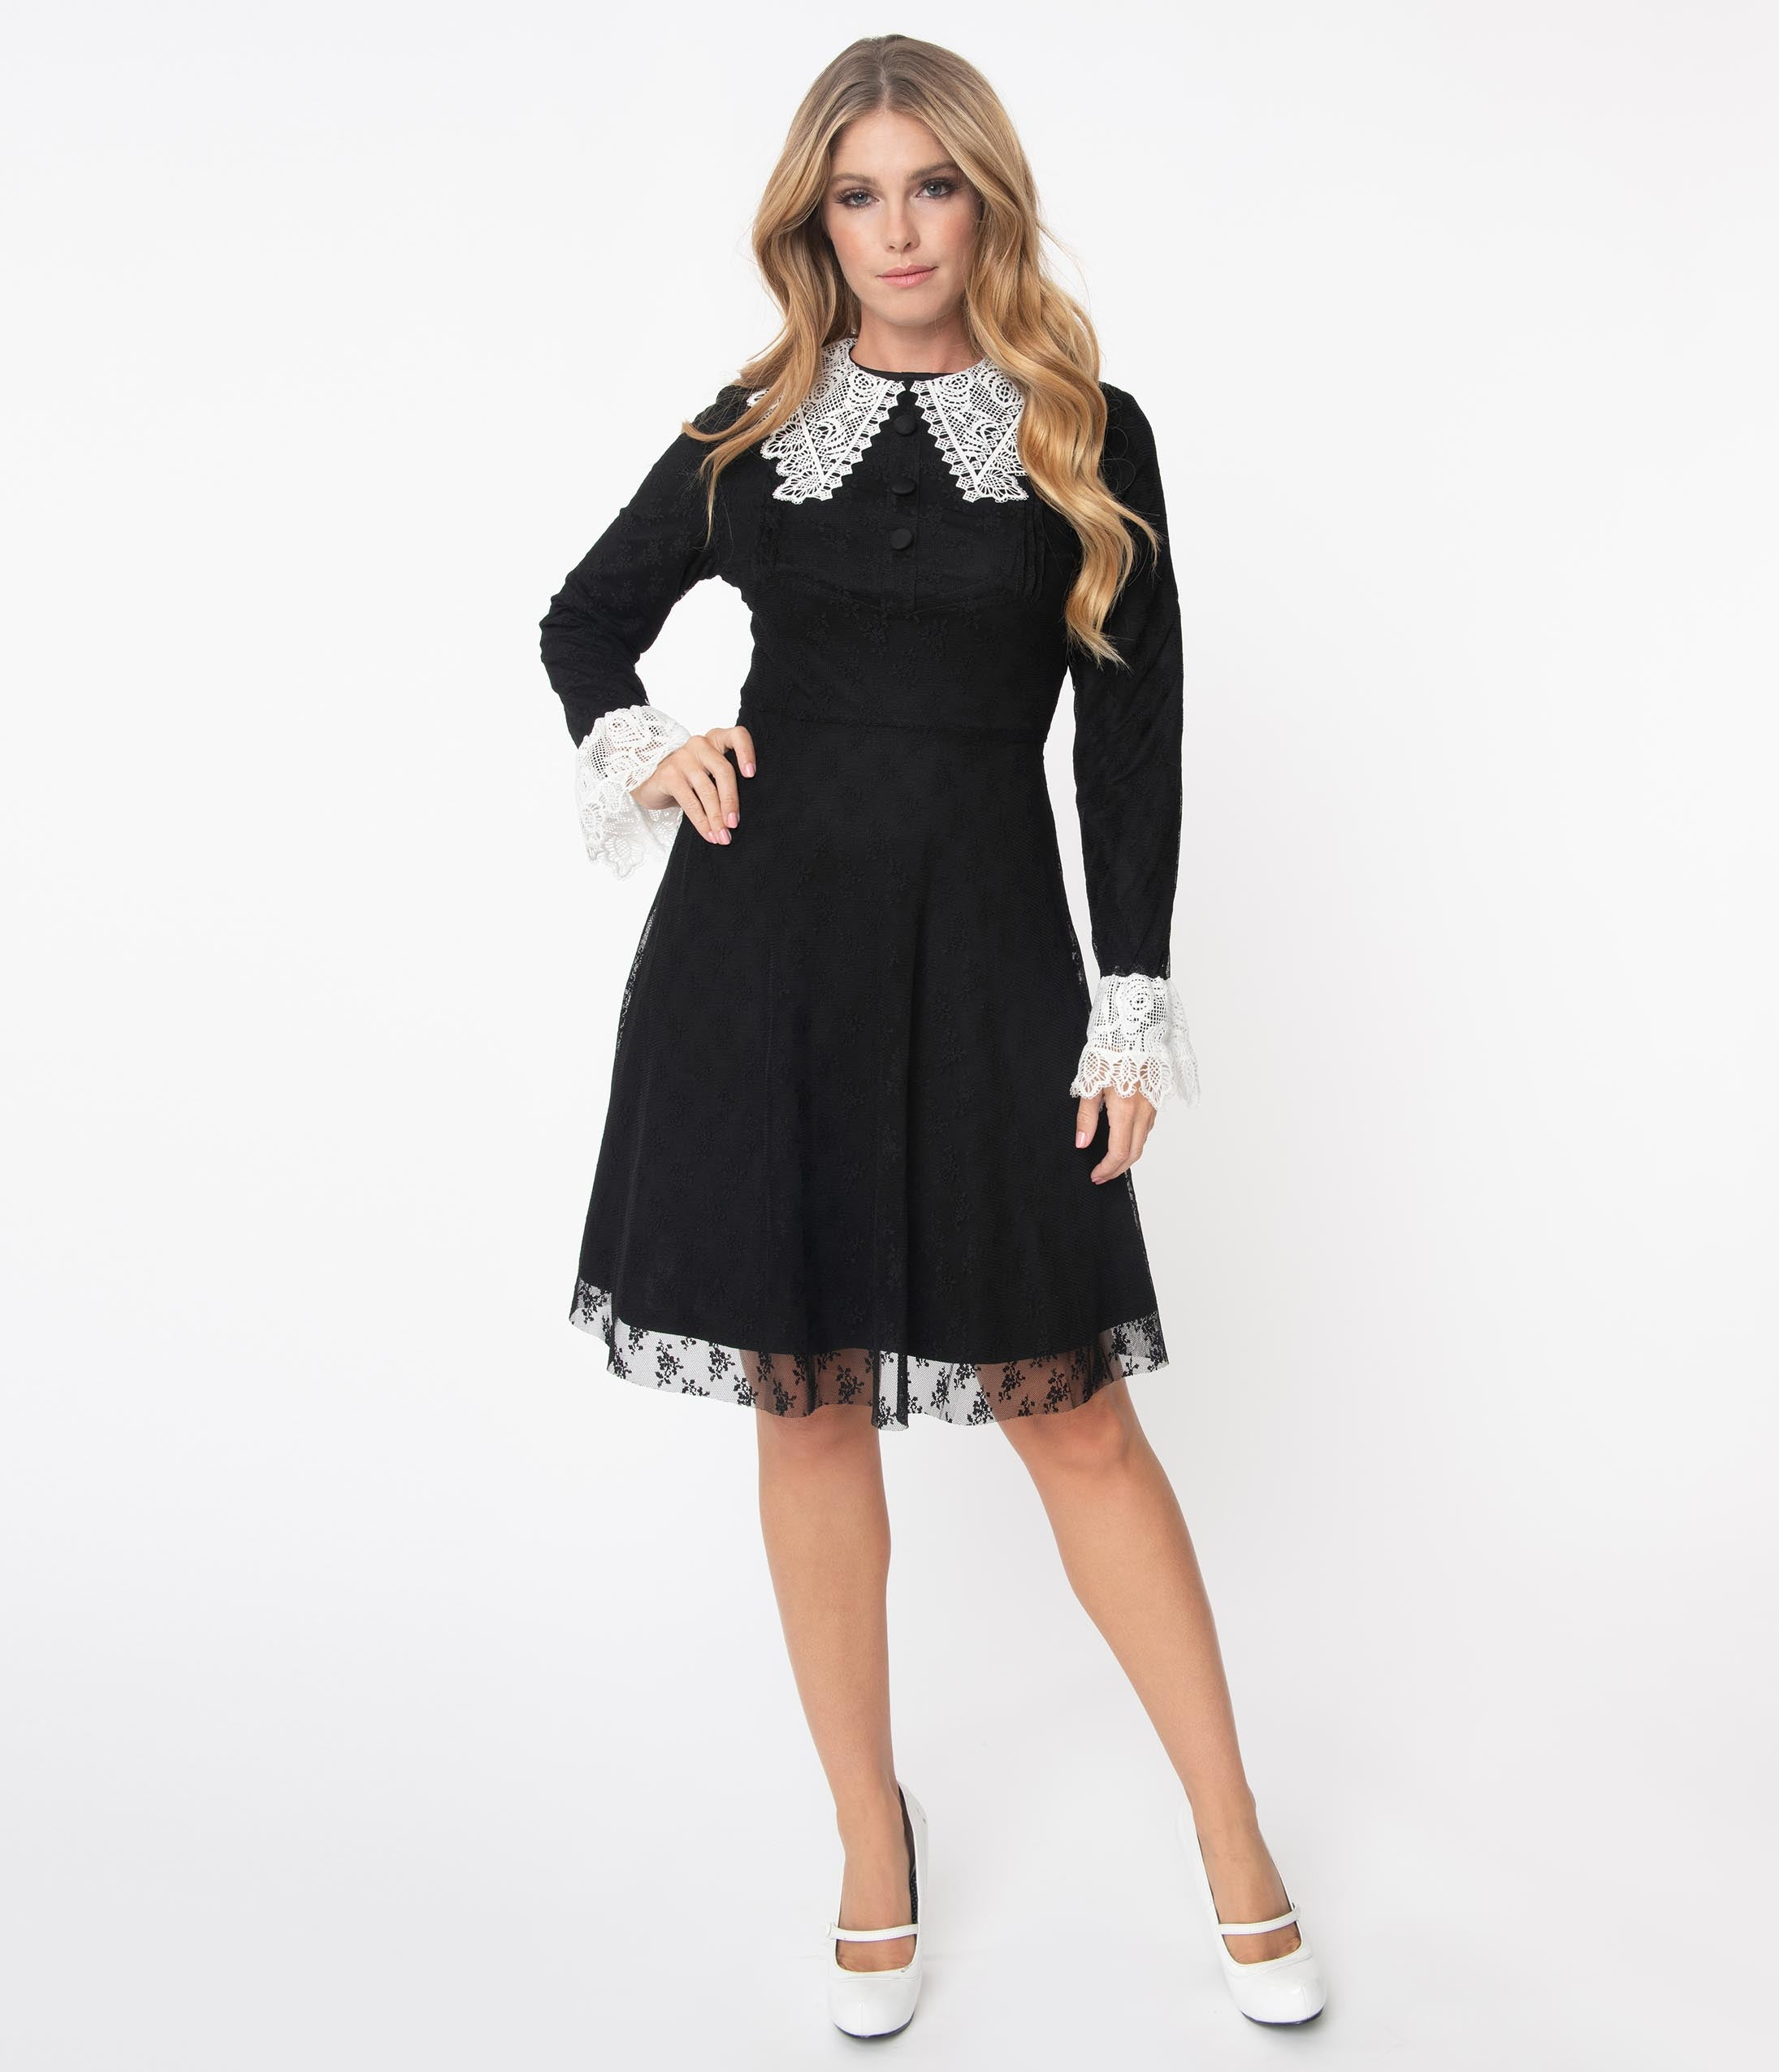 80s Dresses | Casual to Party Dresses Black  White Lace Collar Weird Sisters Fit  Flare Dresses $78.00 AT vintagedancer.com